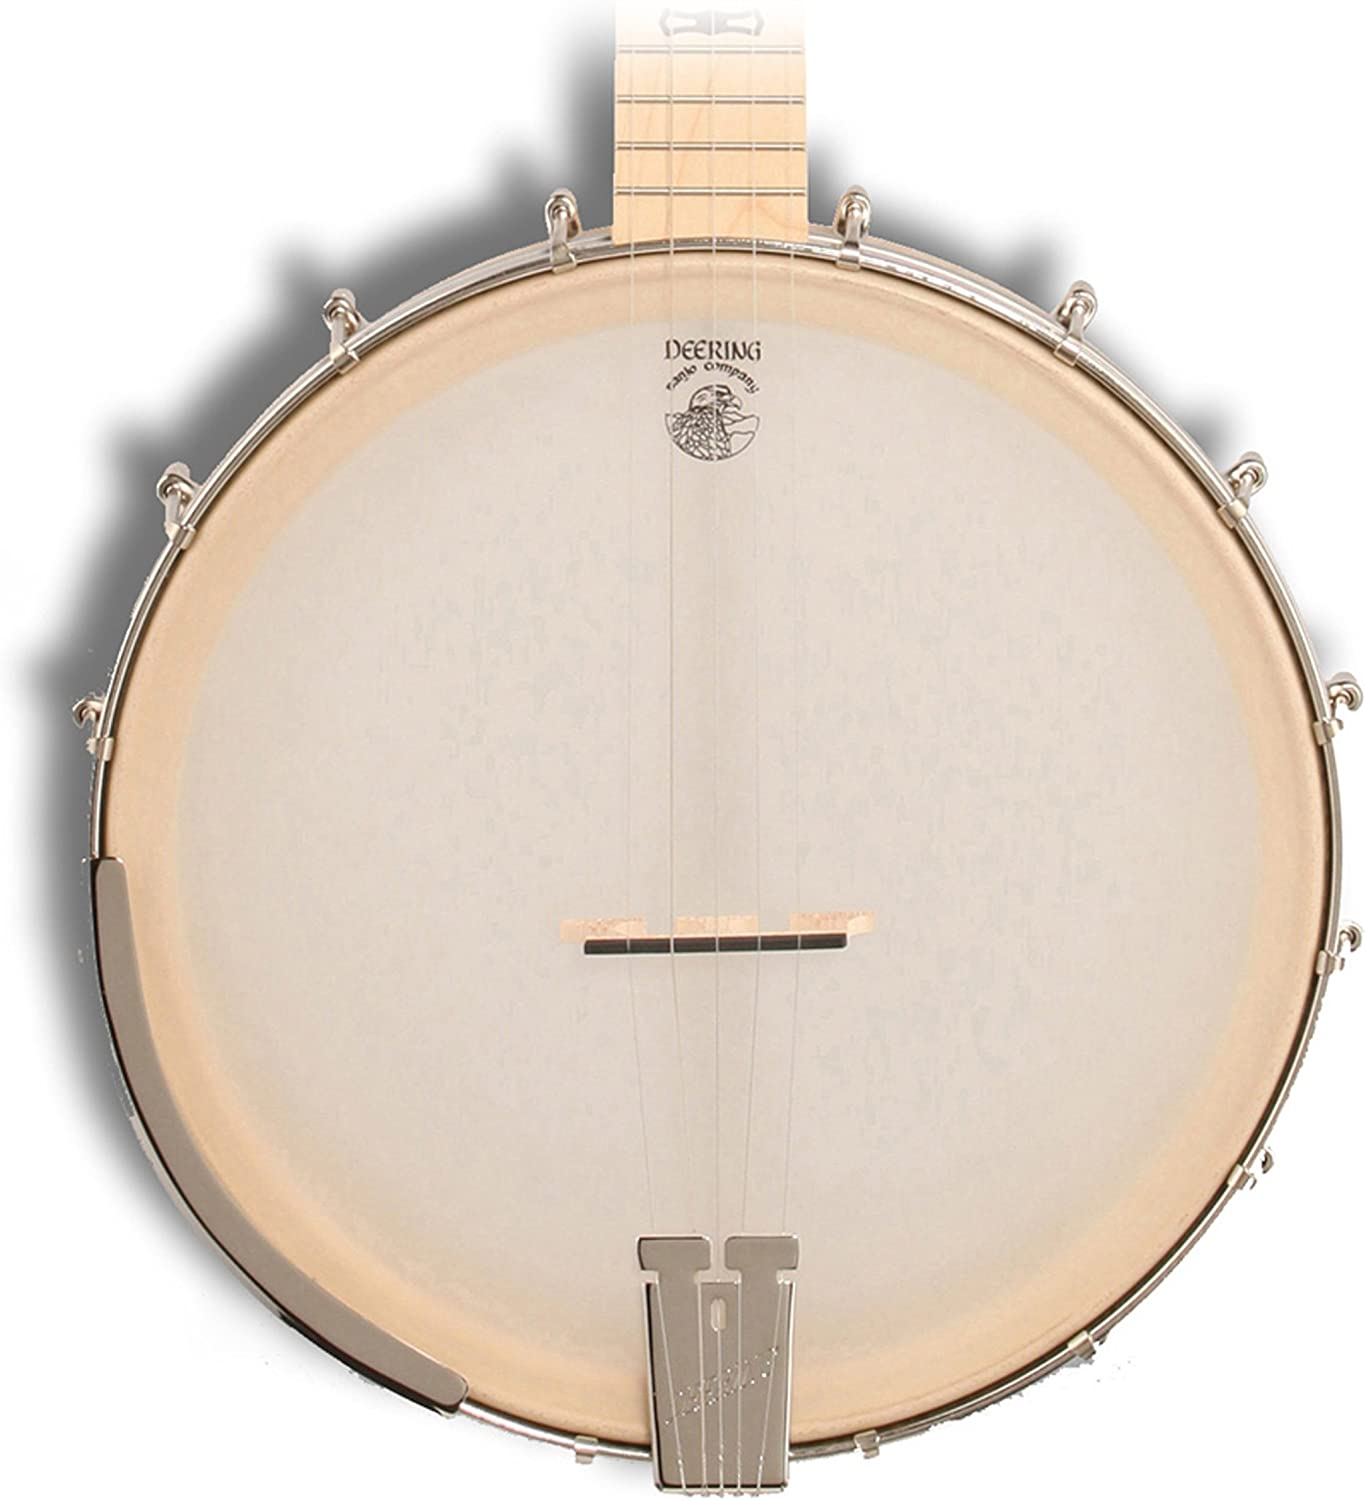 Deering A surprise price is realized Goodtime Americana Banjo Max 70% OFF In. Rim 12